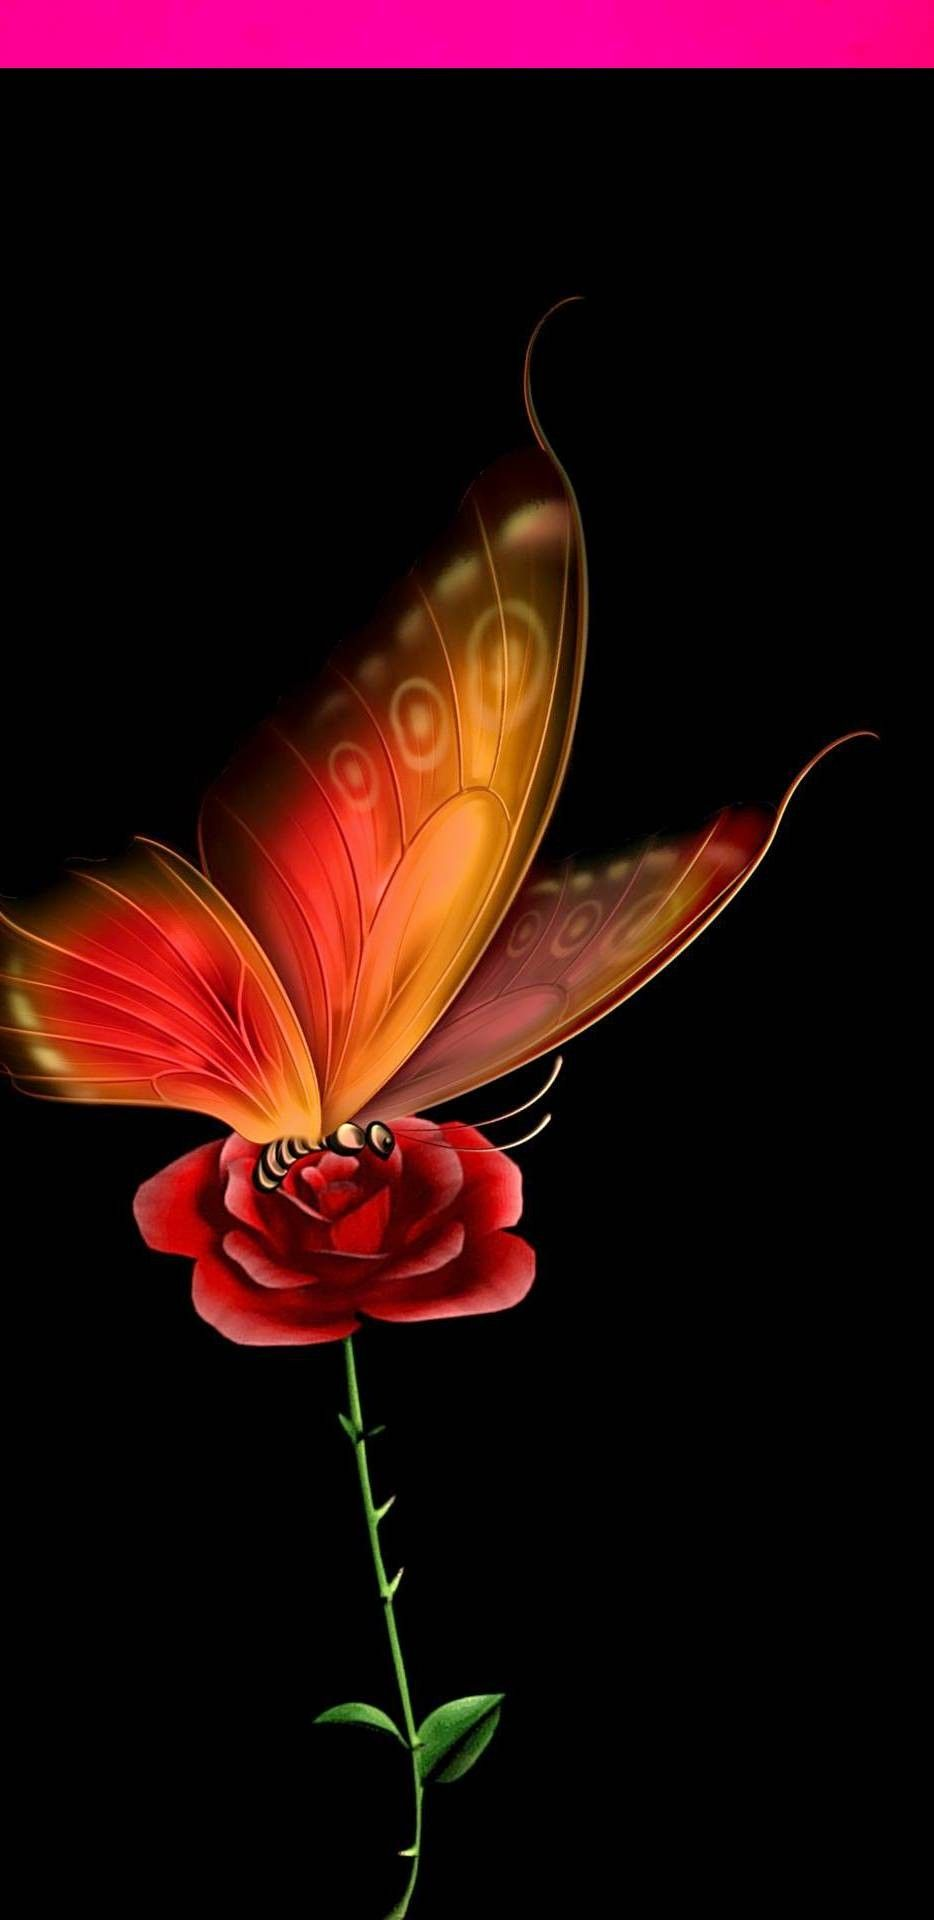 Pin By Dany On Pretty Images Butterfly Wallpaper Backgrounds Butterfly Wallpaper Iphone Butterfly Wallpaper